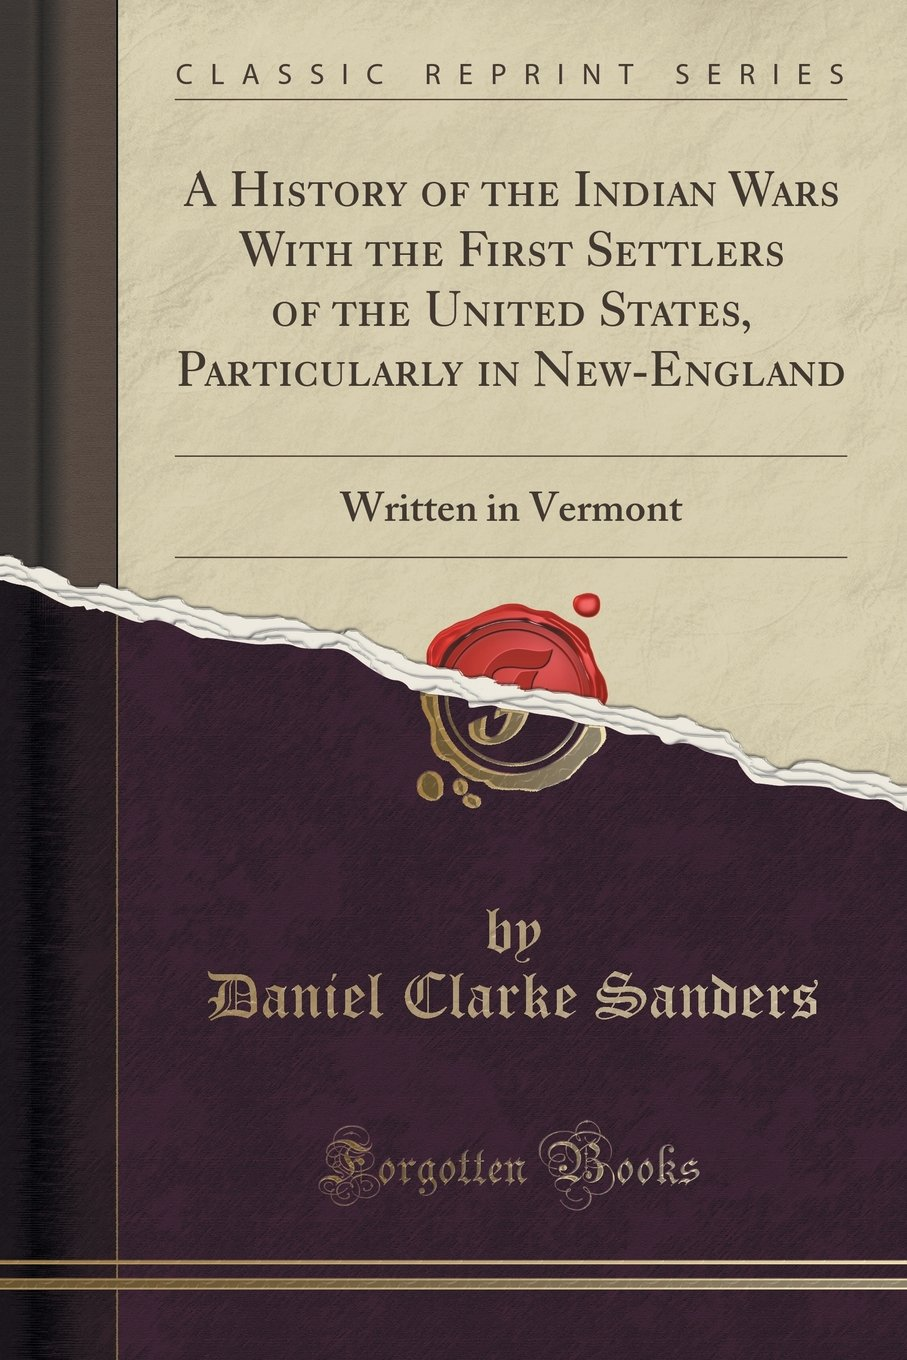 A History of the Indian Wars With the First Settlers of the United States, Particularly in New-England: Written in Vermont (Classic Reprint)